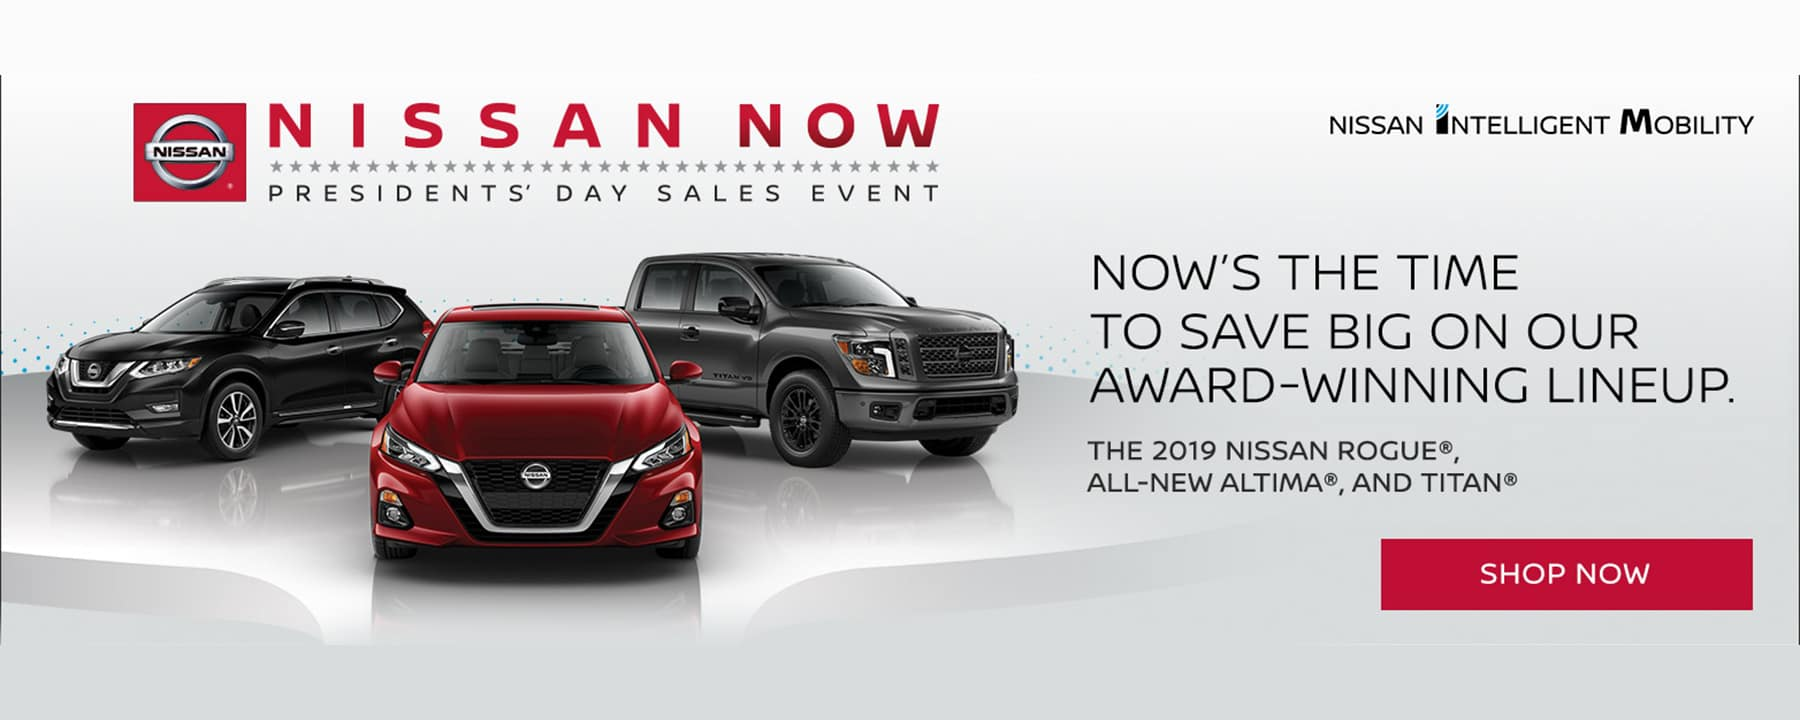 President's Day Sale Event at Star Nissan!